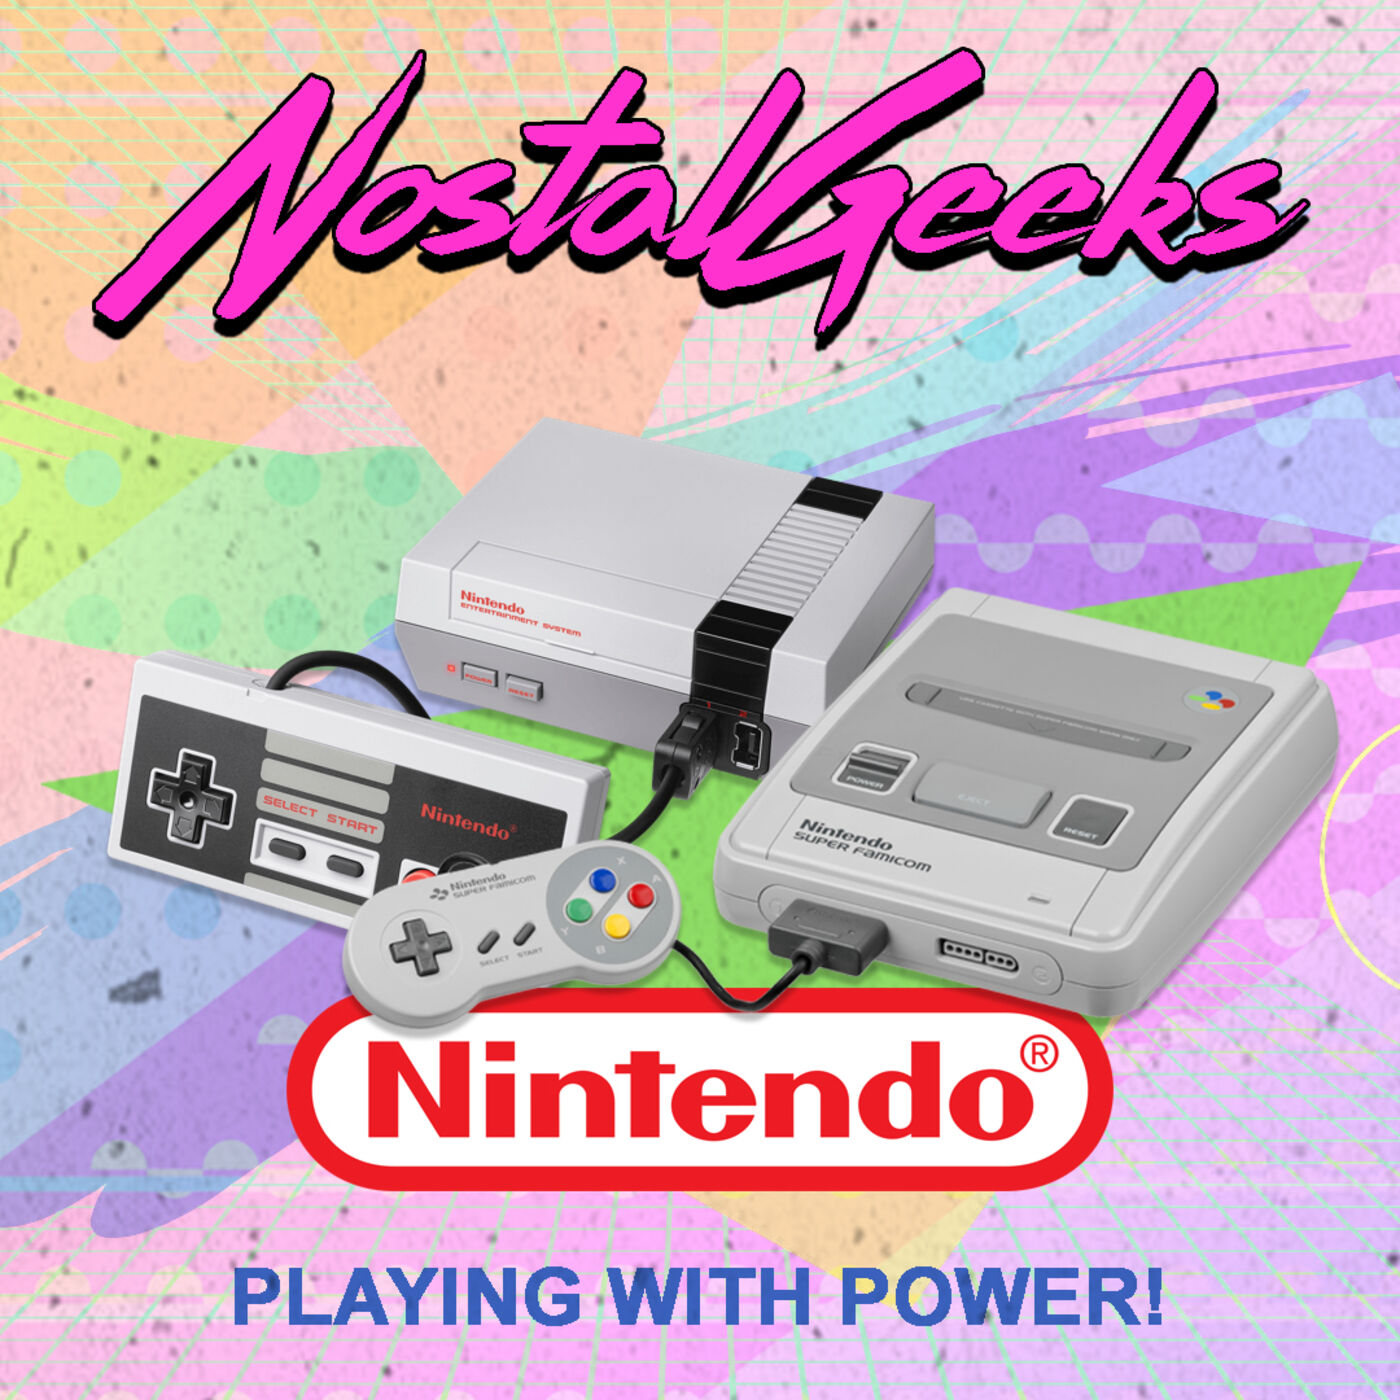 Nintendo - Playing With Power!